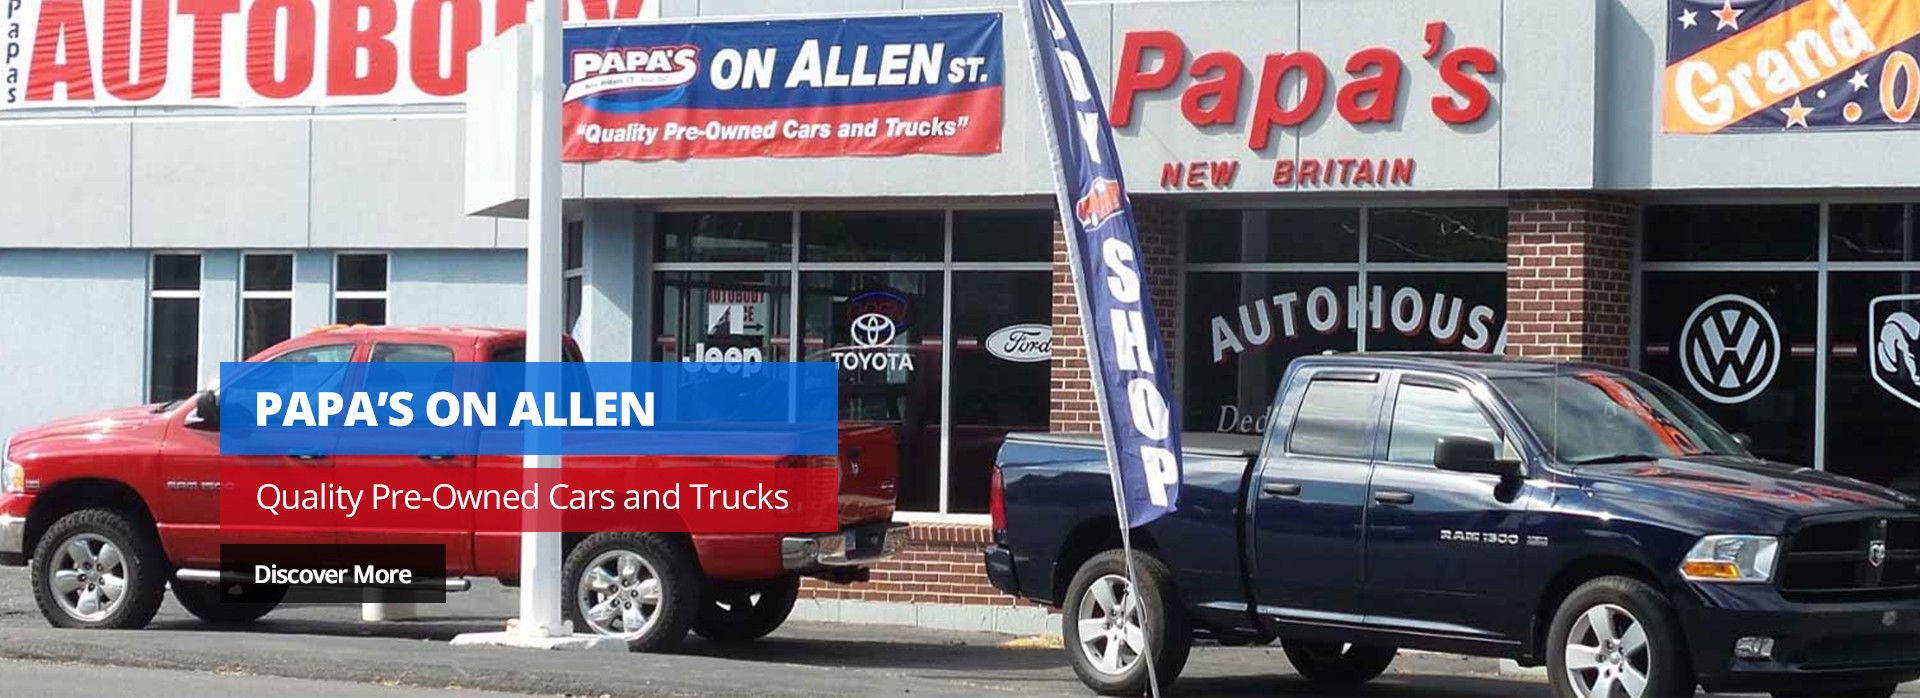 Papa's on Allen - Quality Pre-Owned Cars and Trucks. Discover More